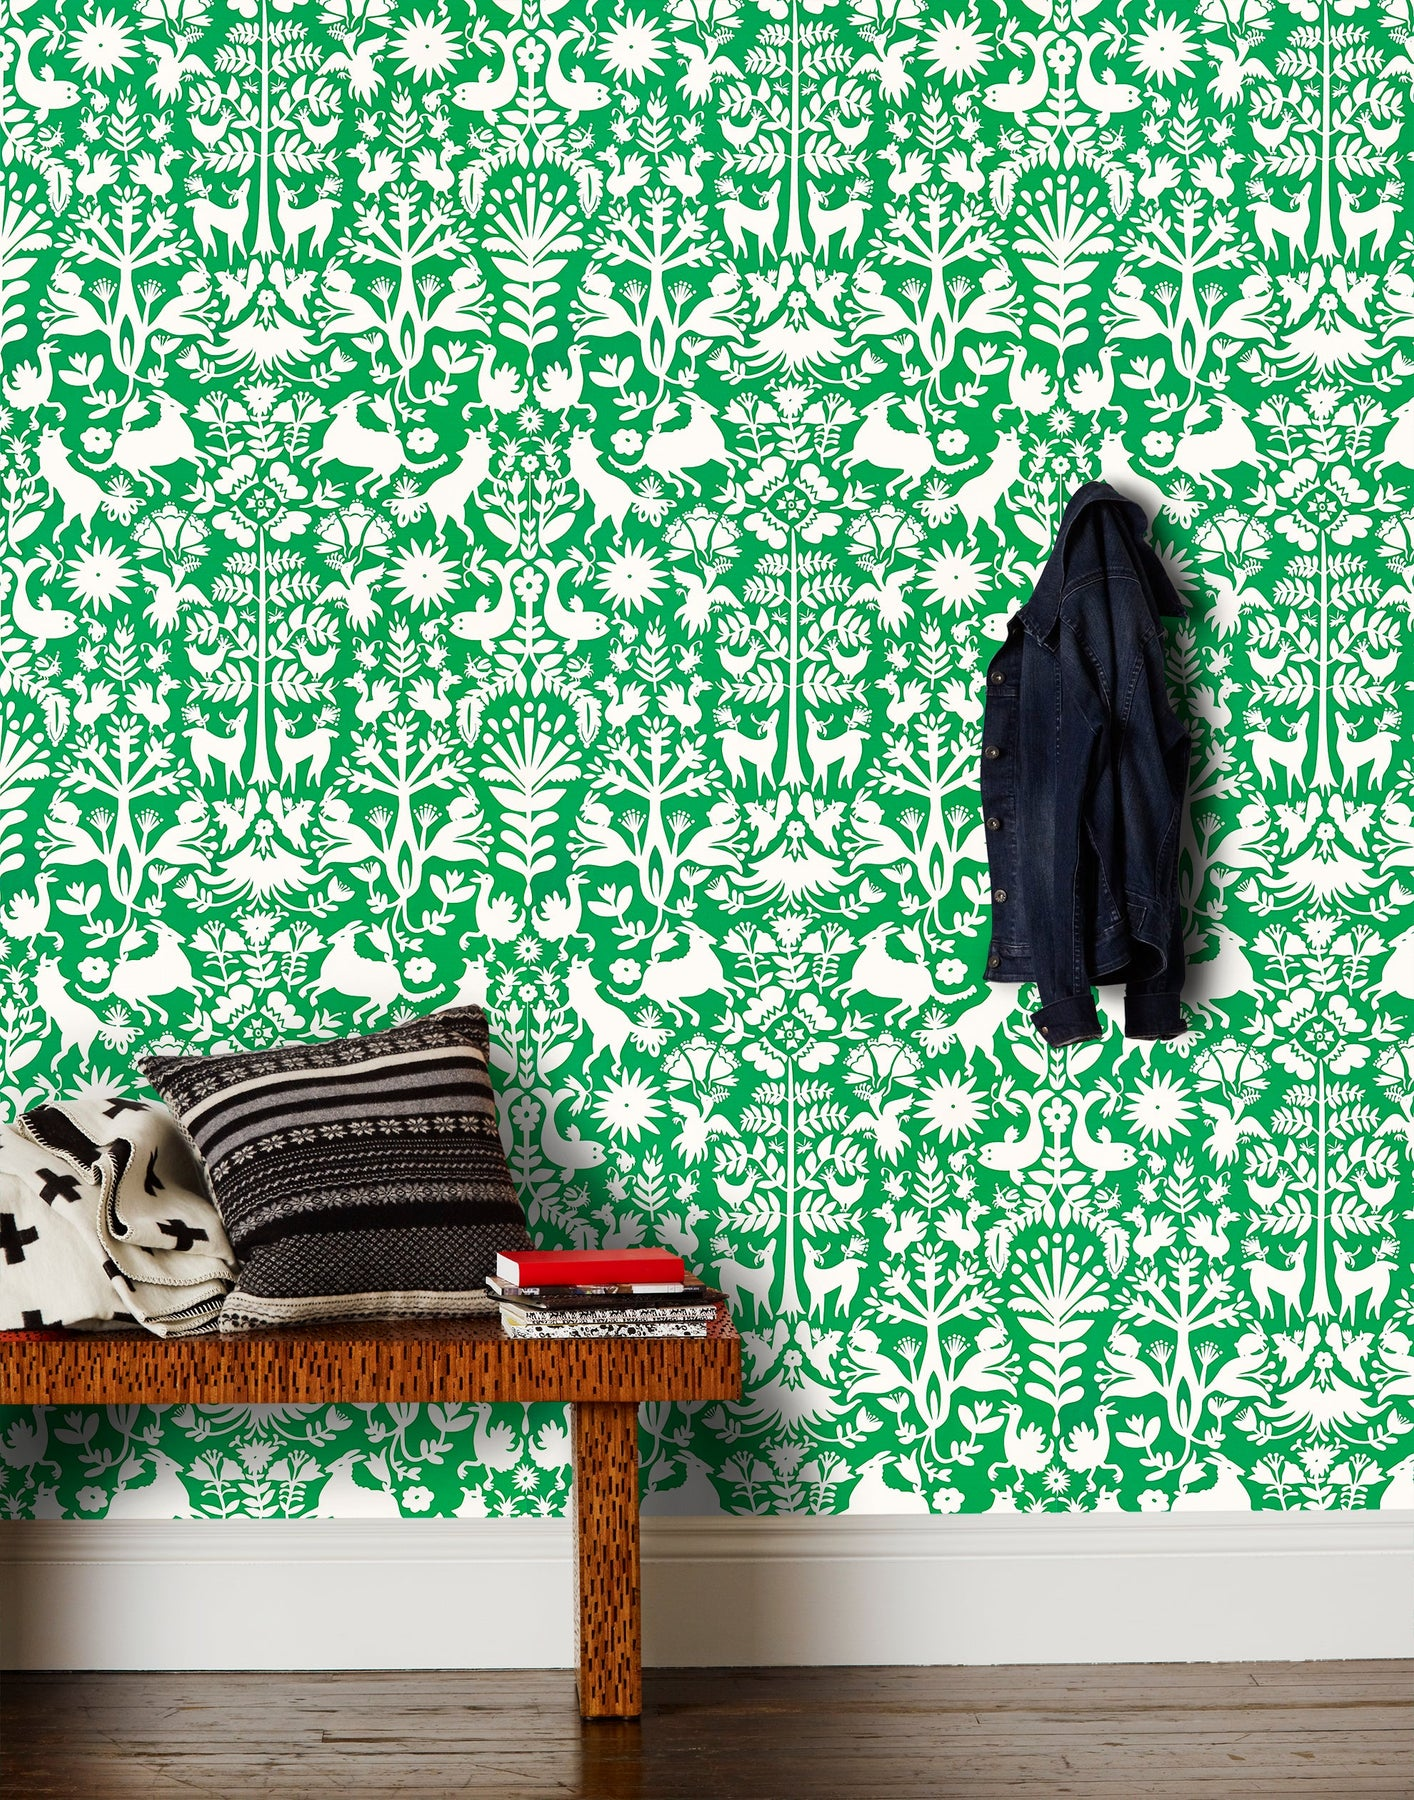 Otomi (Jade) wallpaper featuring a white Otomi meets Scandinavian folk pattern on a green background | Hygge & West x Emily Isabella